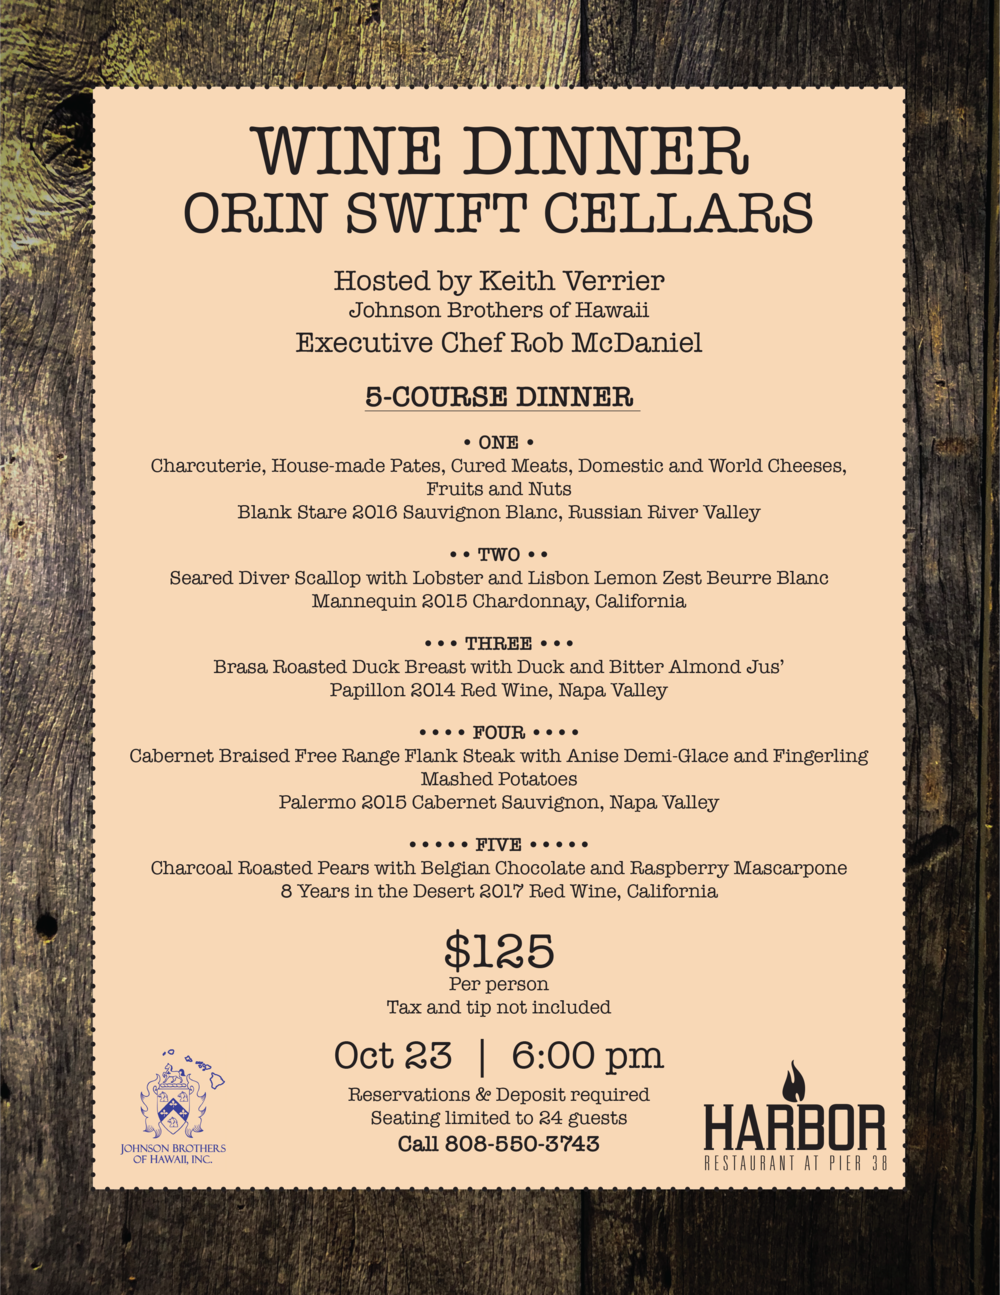 ORIN SWIFT WINE DINNER FULL.png